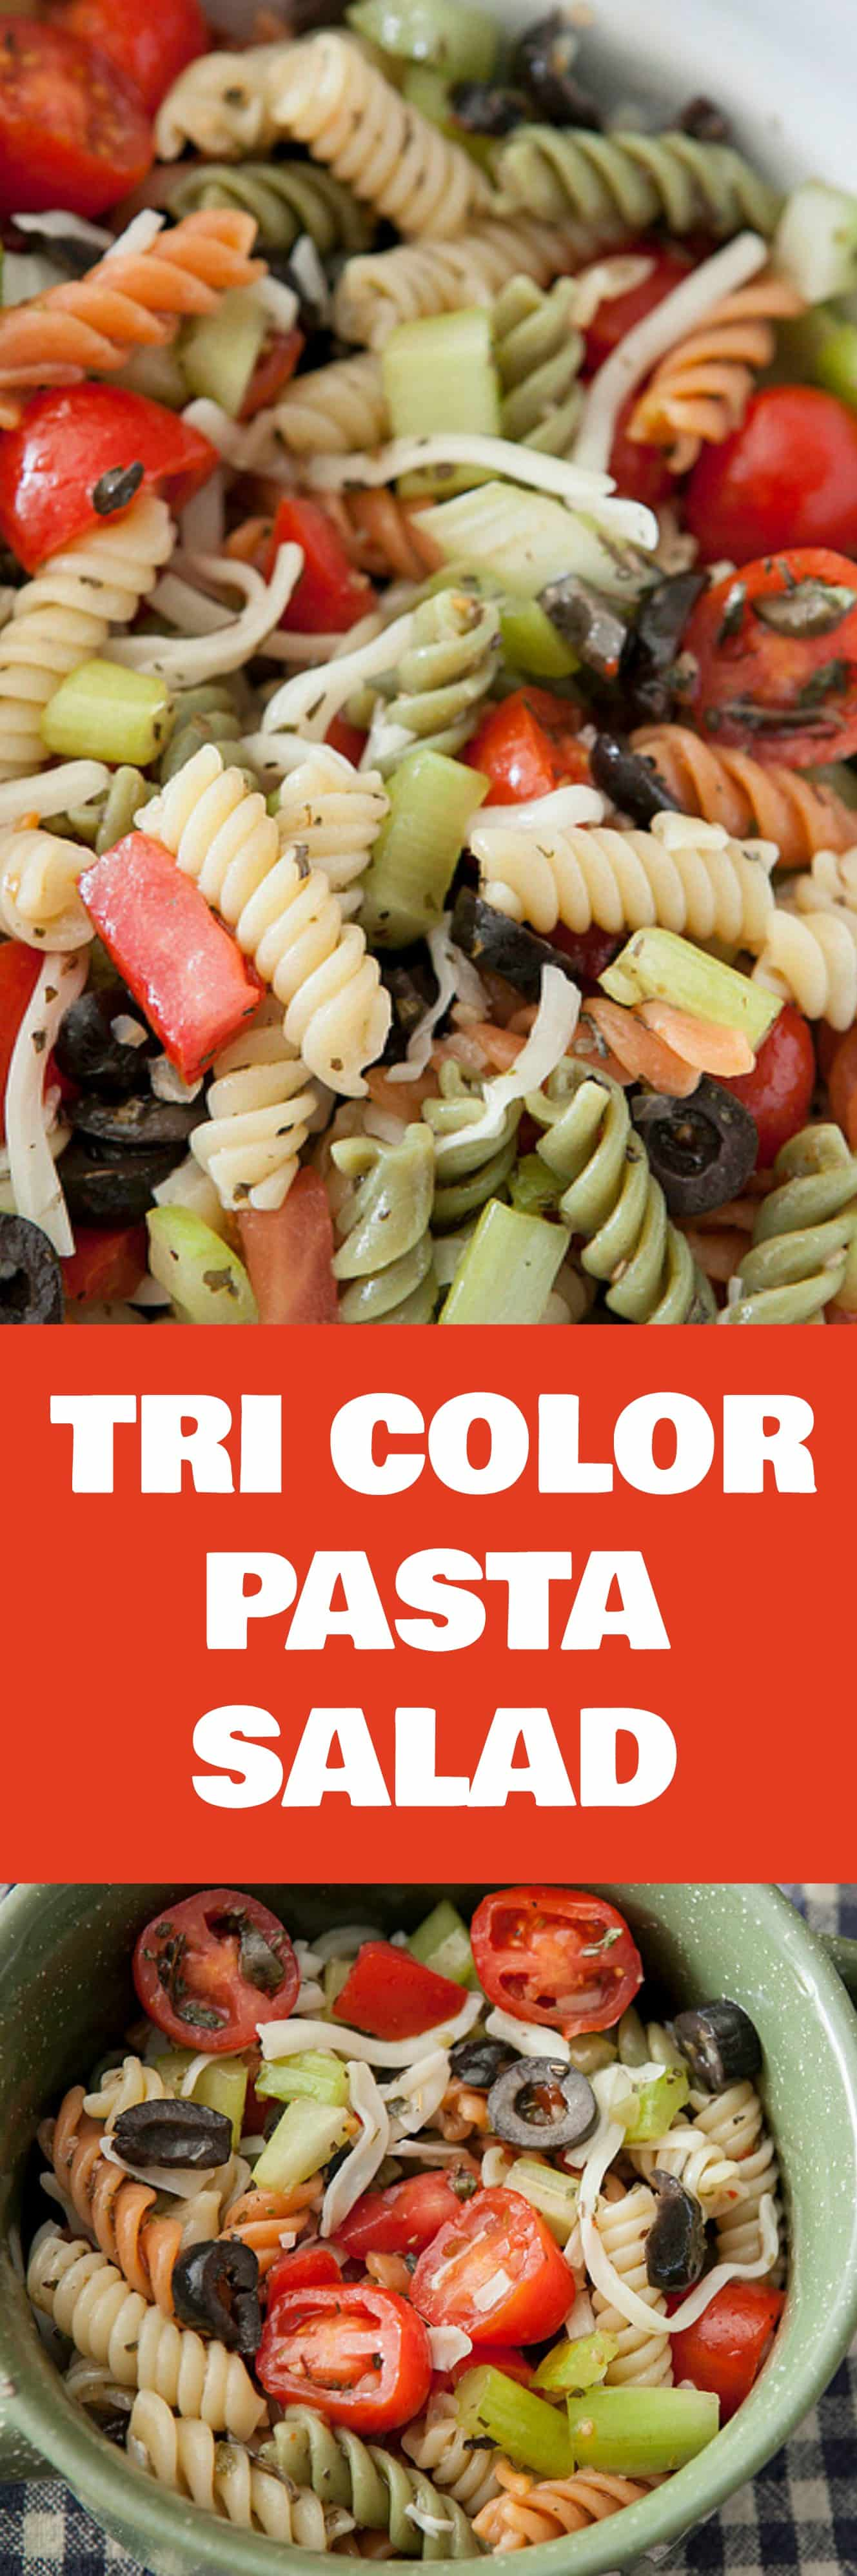 Easy recipe for the best tri color pasta salad!  This is the perfect Summer time salad that uses Italian dressing, fresh vegetables and rotini pasta!